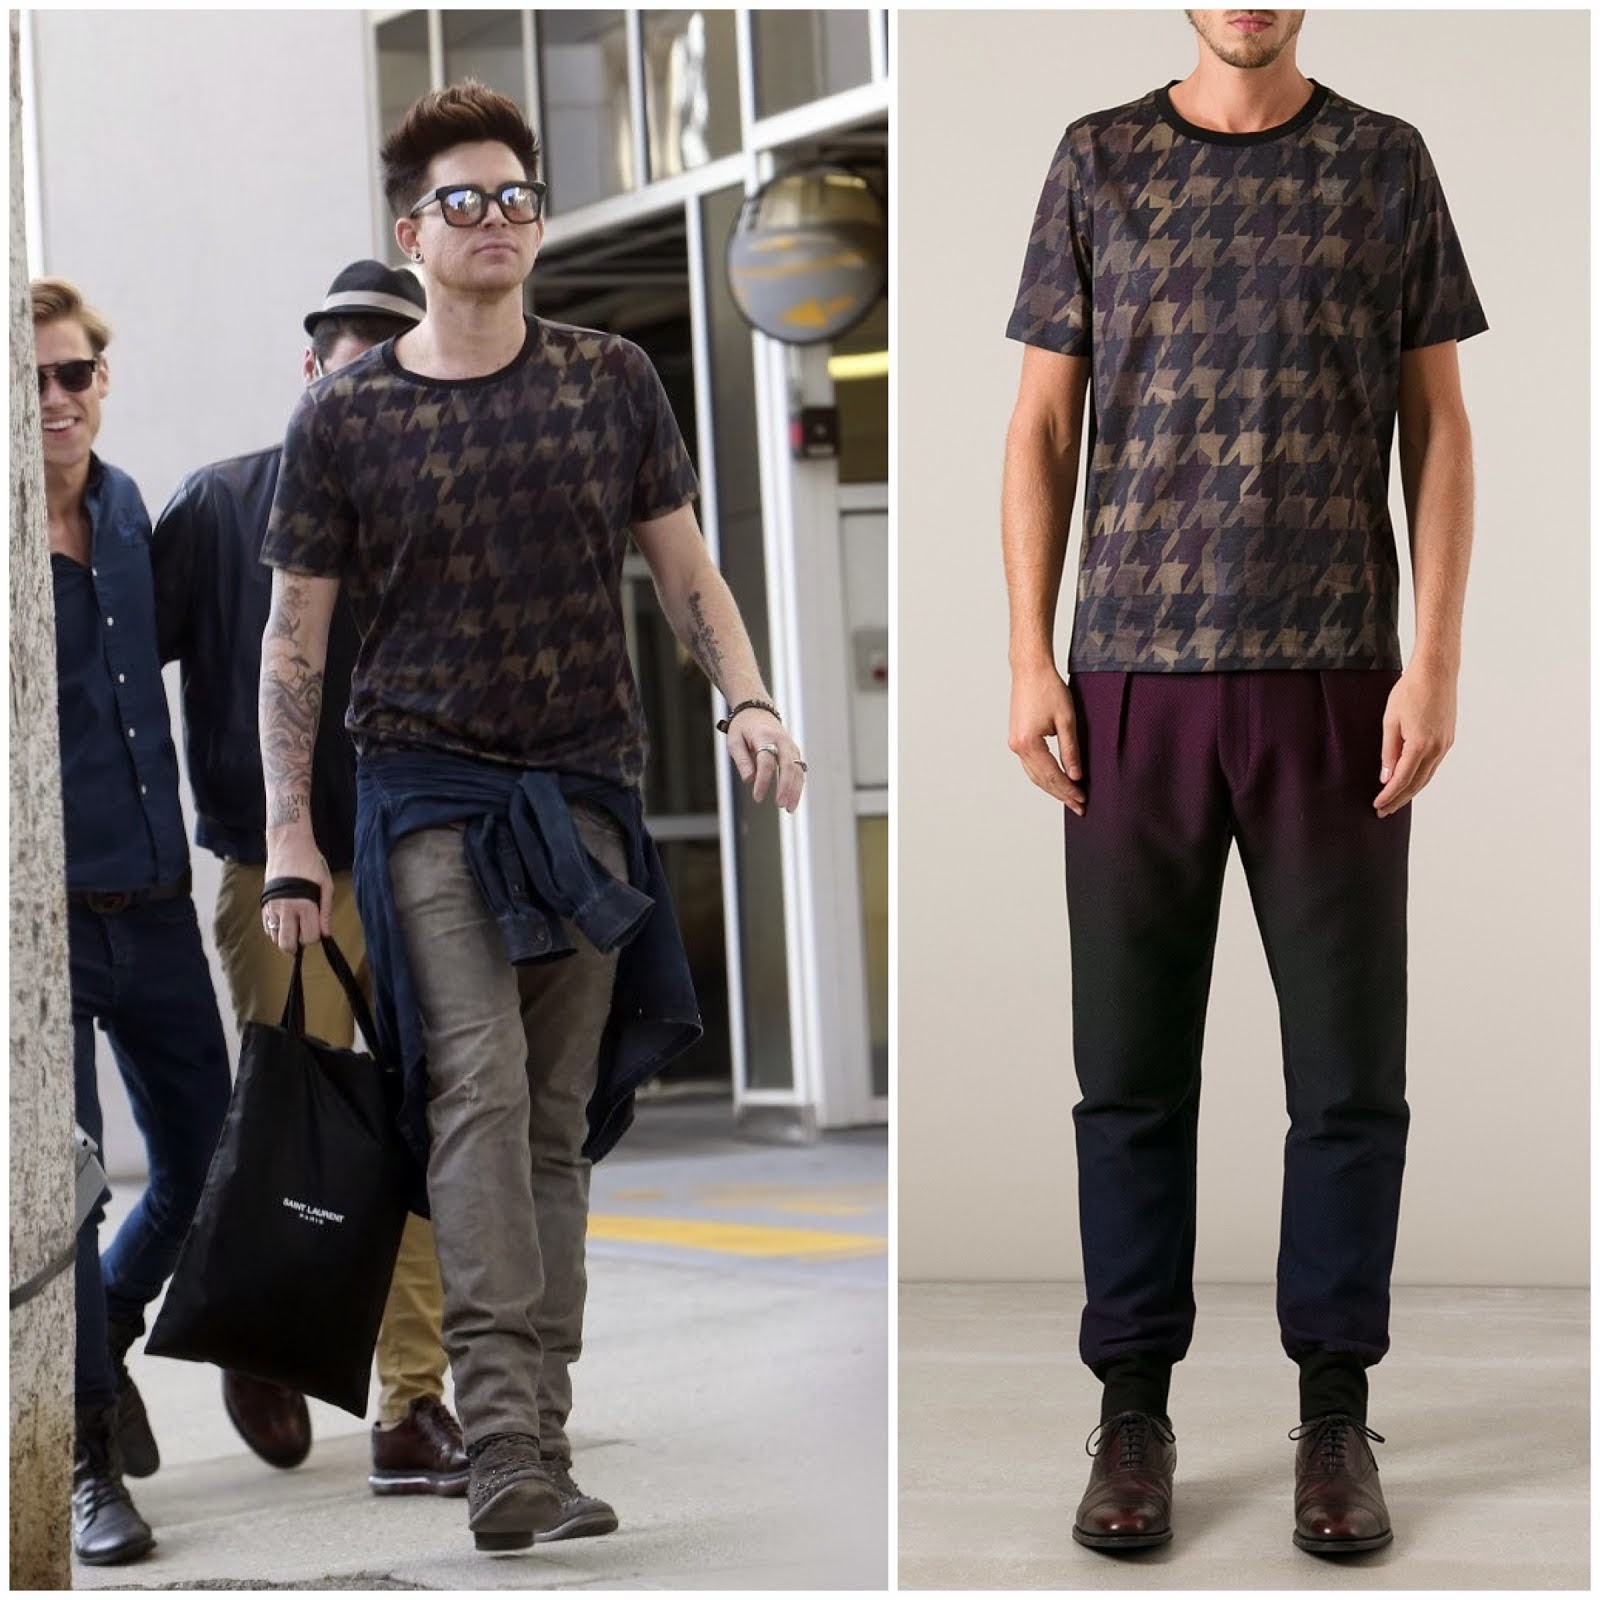 00O00 Menswear Blog: Adam Lambert in Paul Smith - Out and about in Beverly Hills